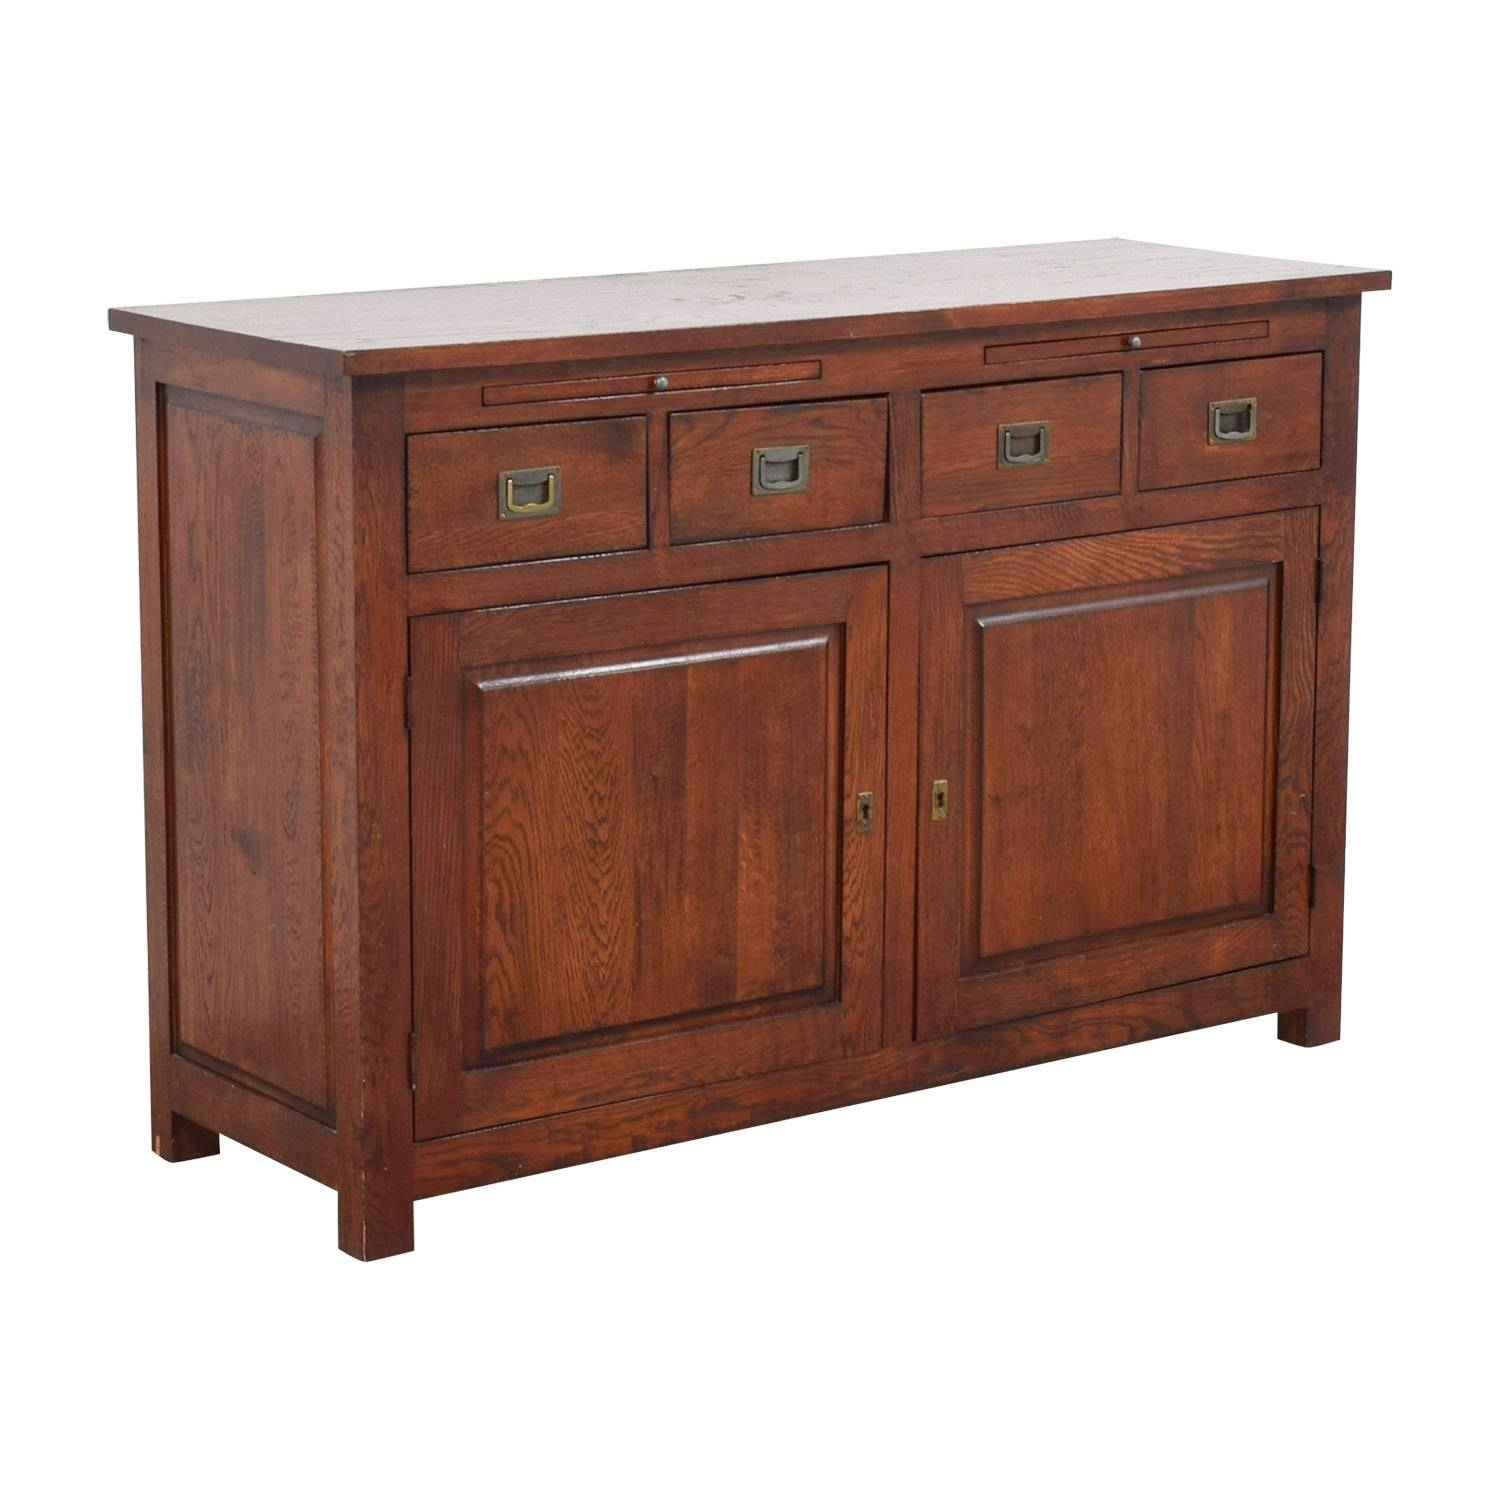 62% Off - Crate & Barrel Crate & Barrel Wooden Buffet / Storage throughout Crate and Barrel Sideboards (Image 2 of 15)